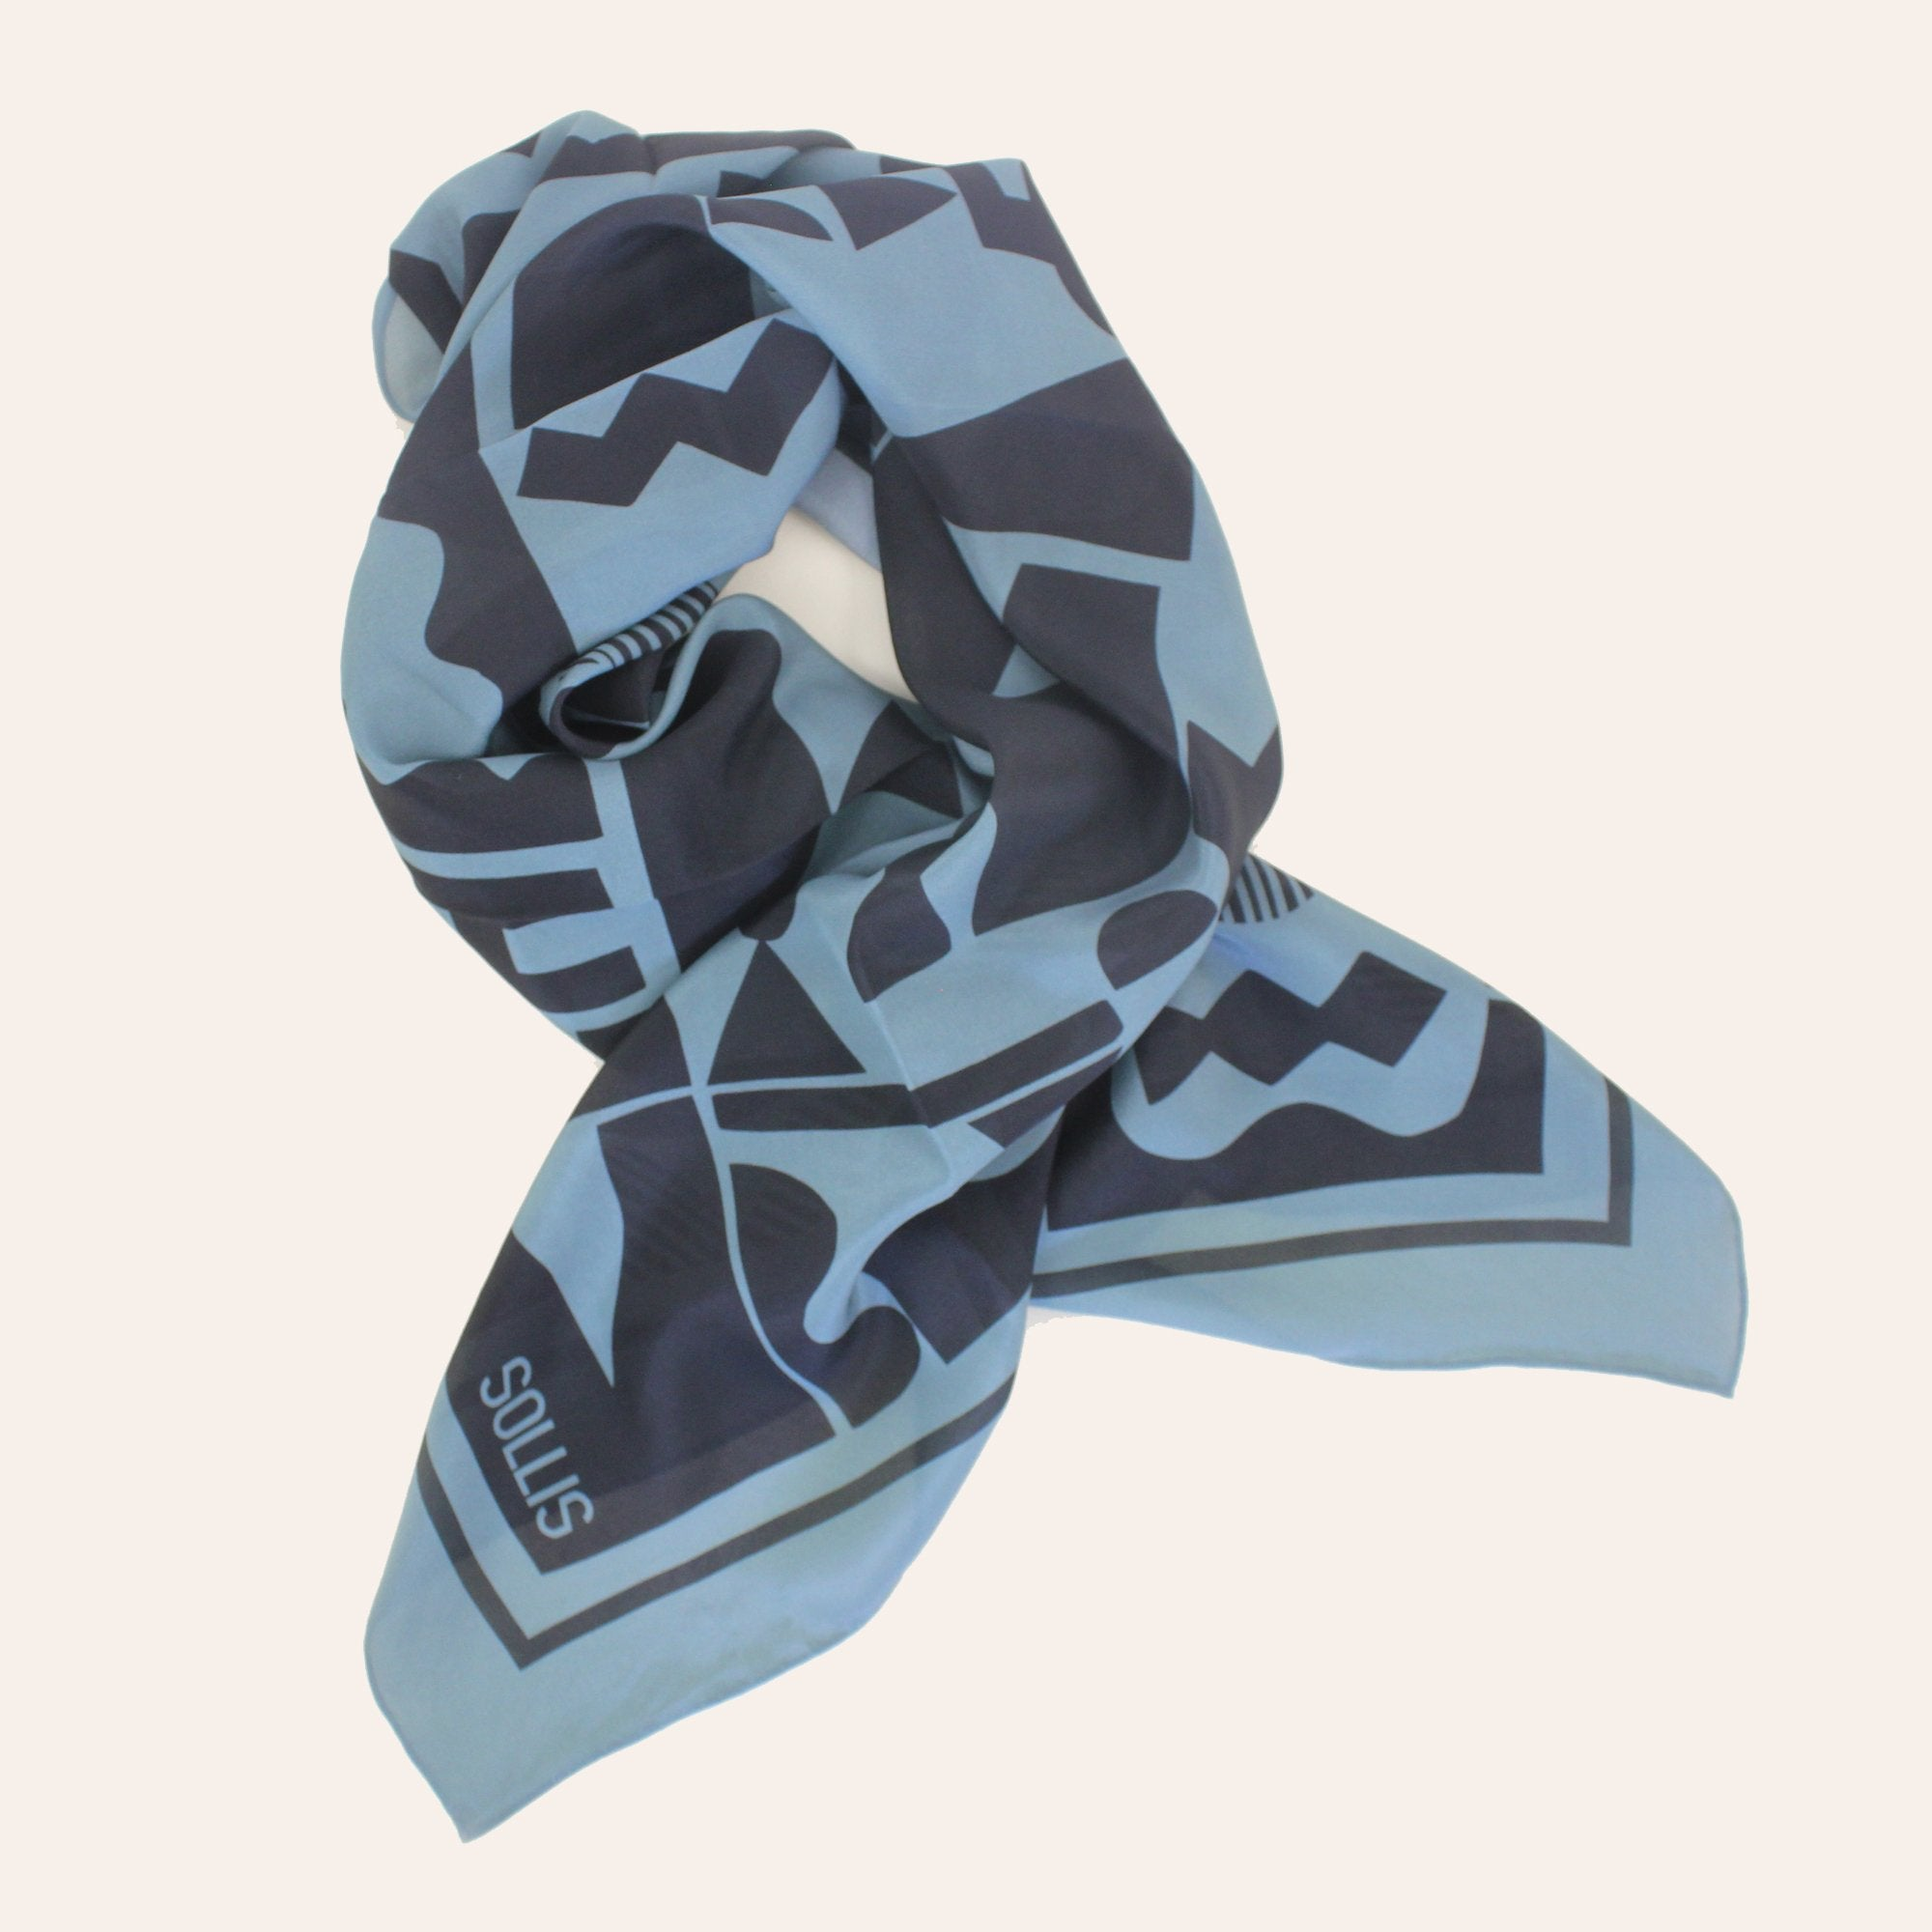 SILK SCARF - 'SHAPES' design - 60% OFF